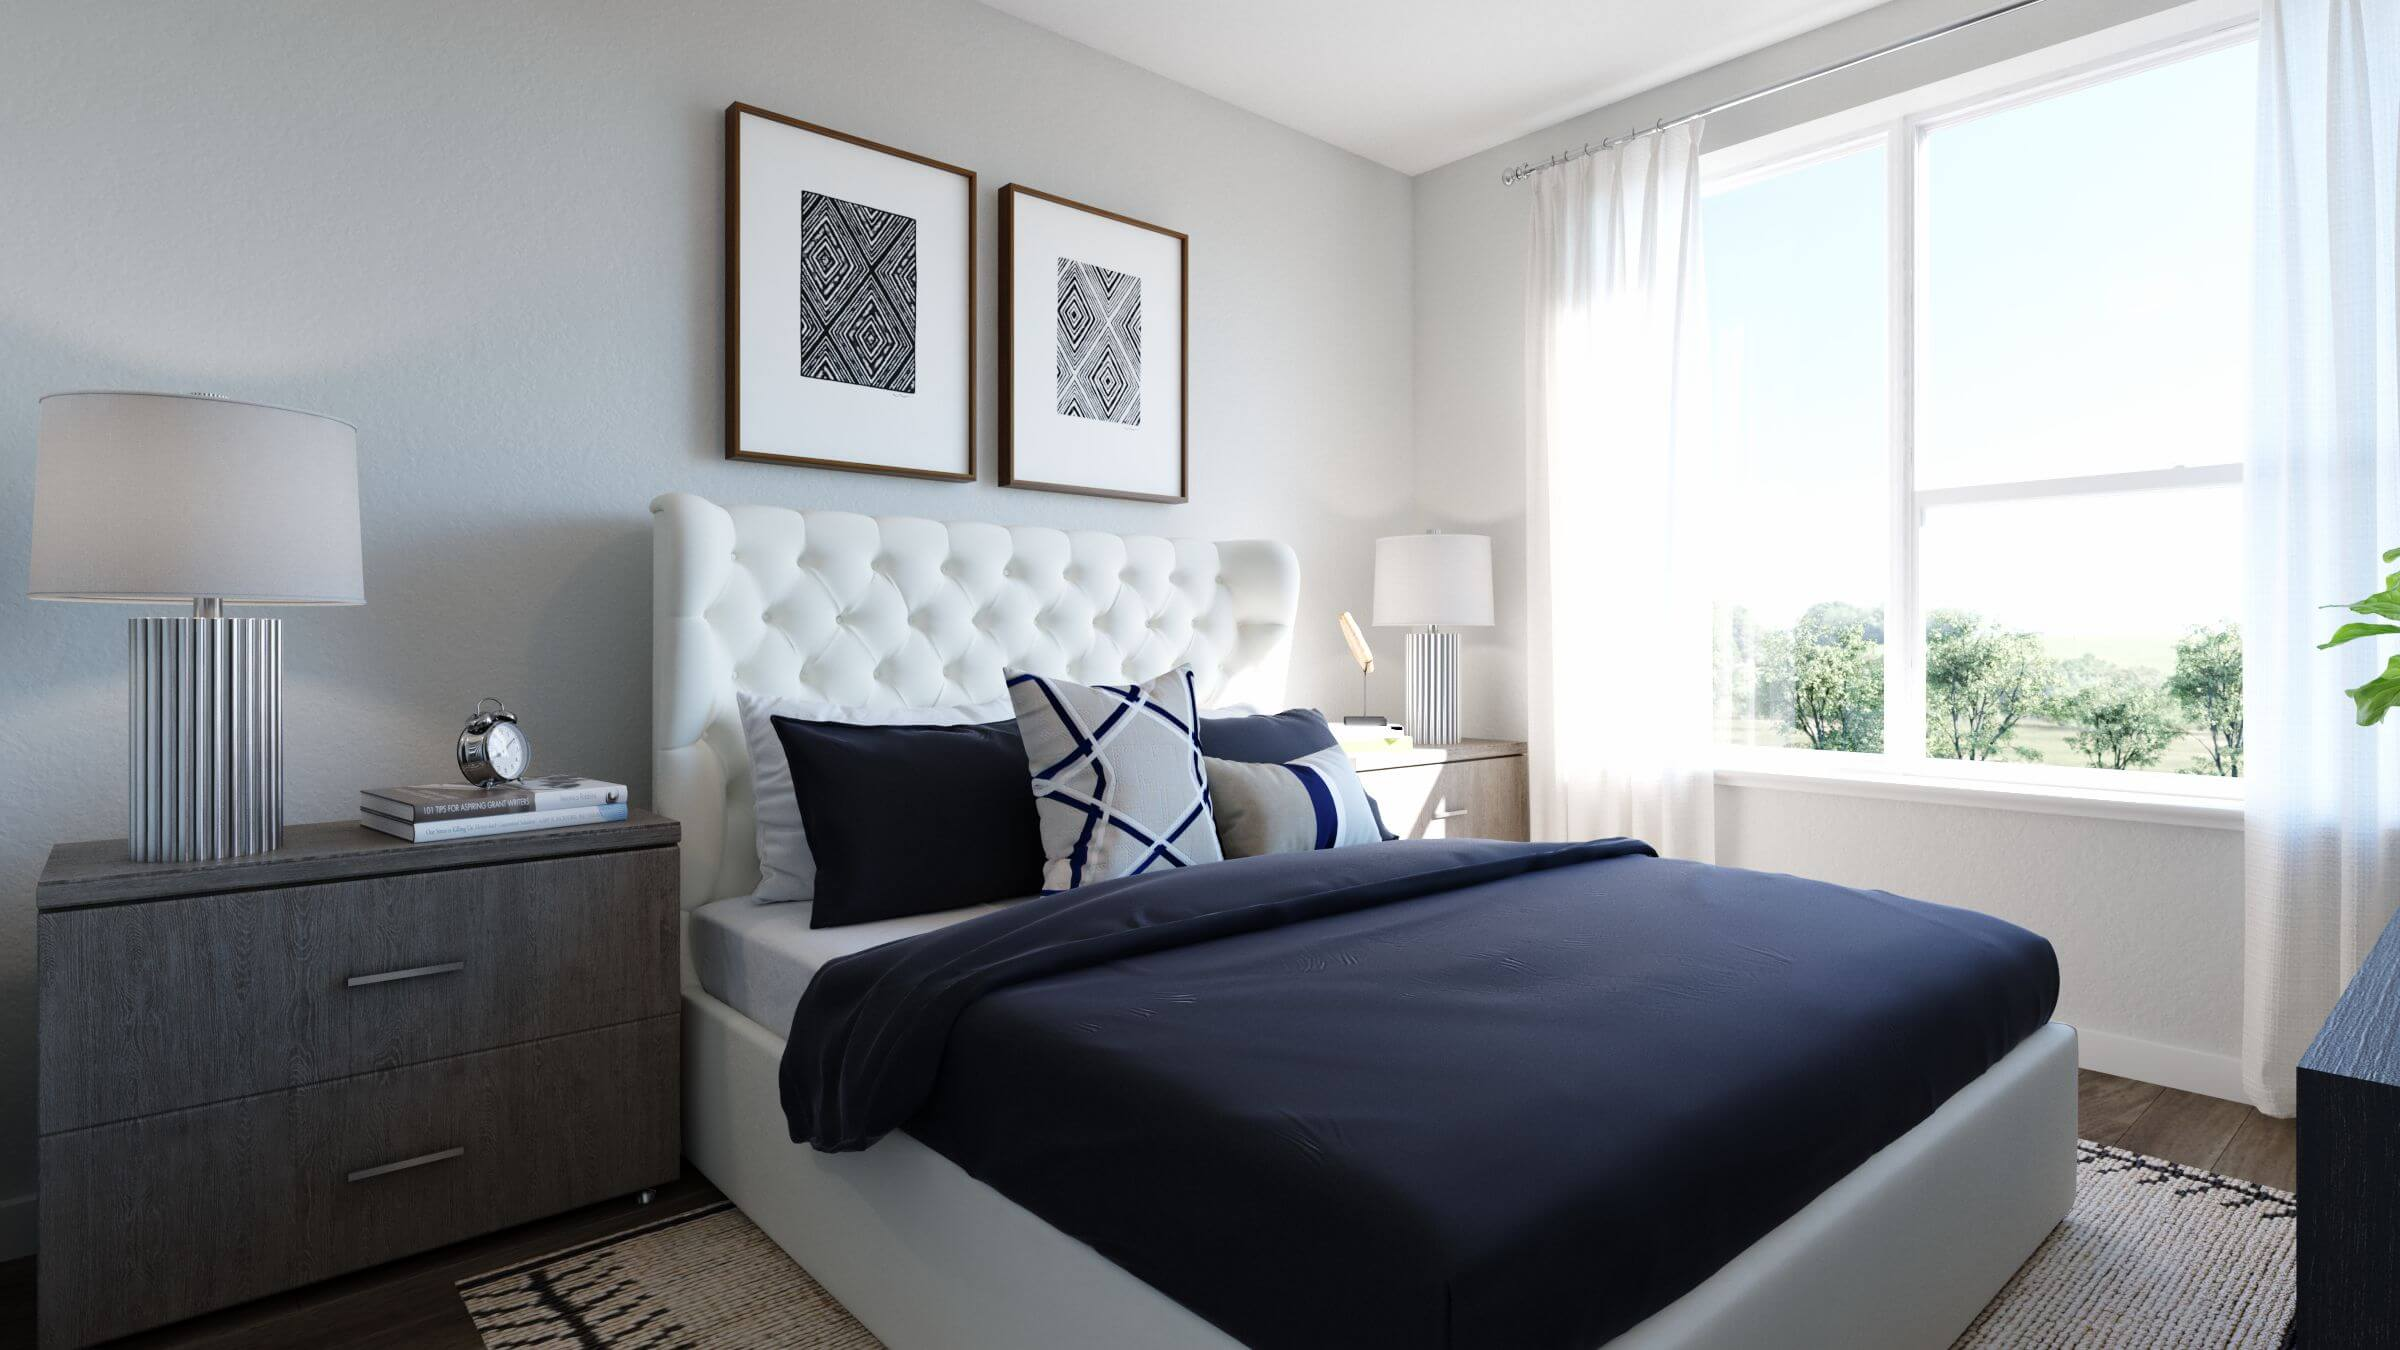 Luxury Apartments in North Richland Hills, TX